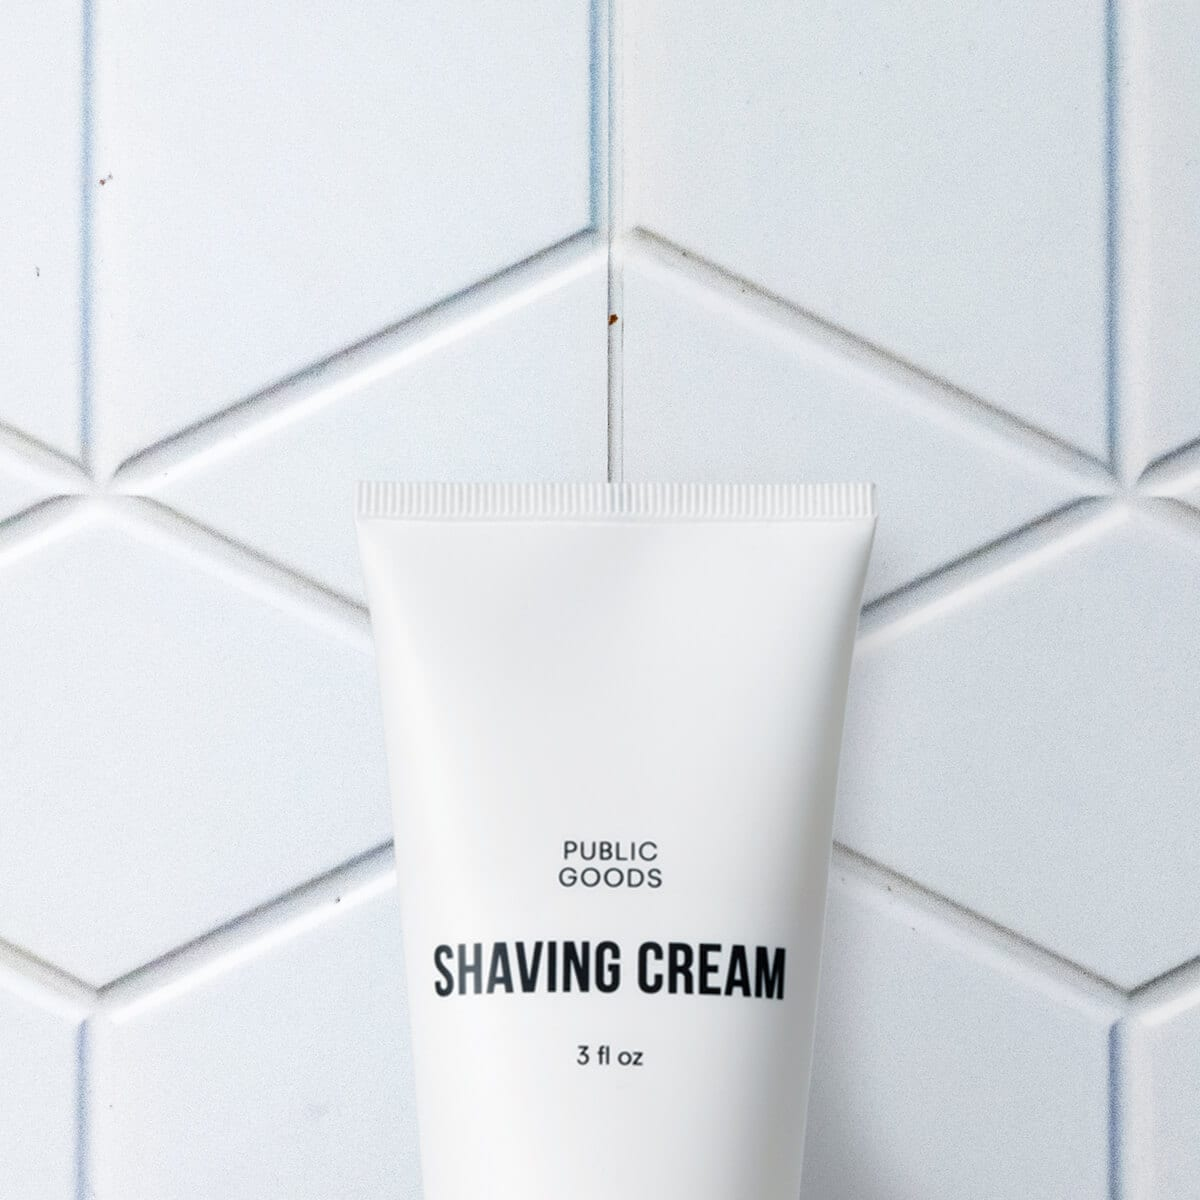 What Does Shaving Cream Do? Why You Should Use It